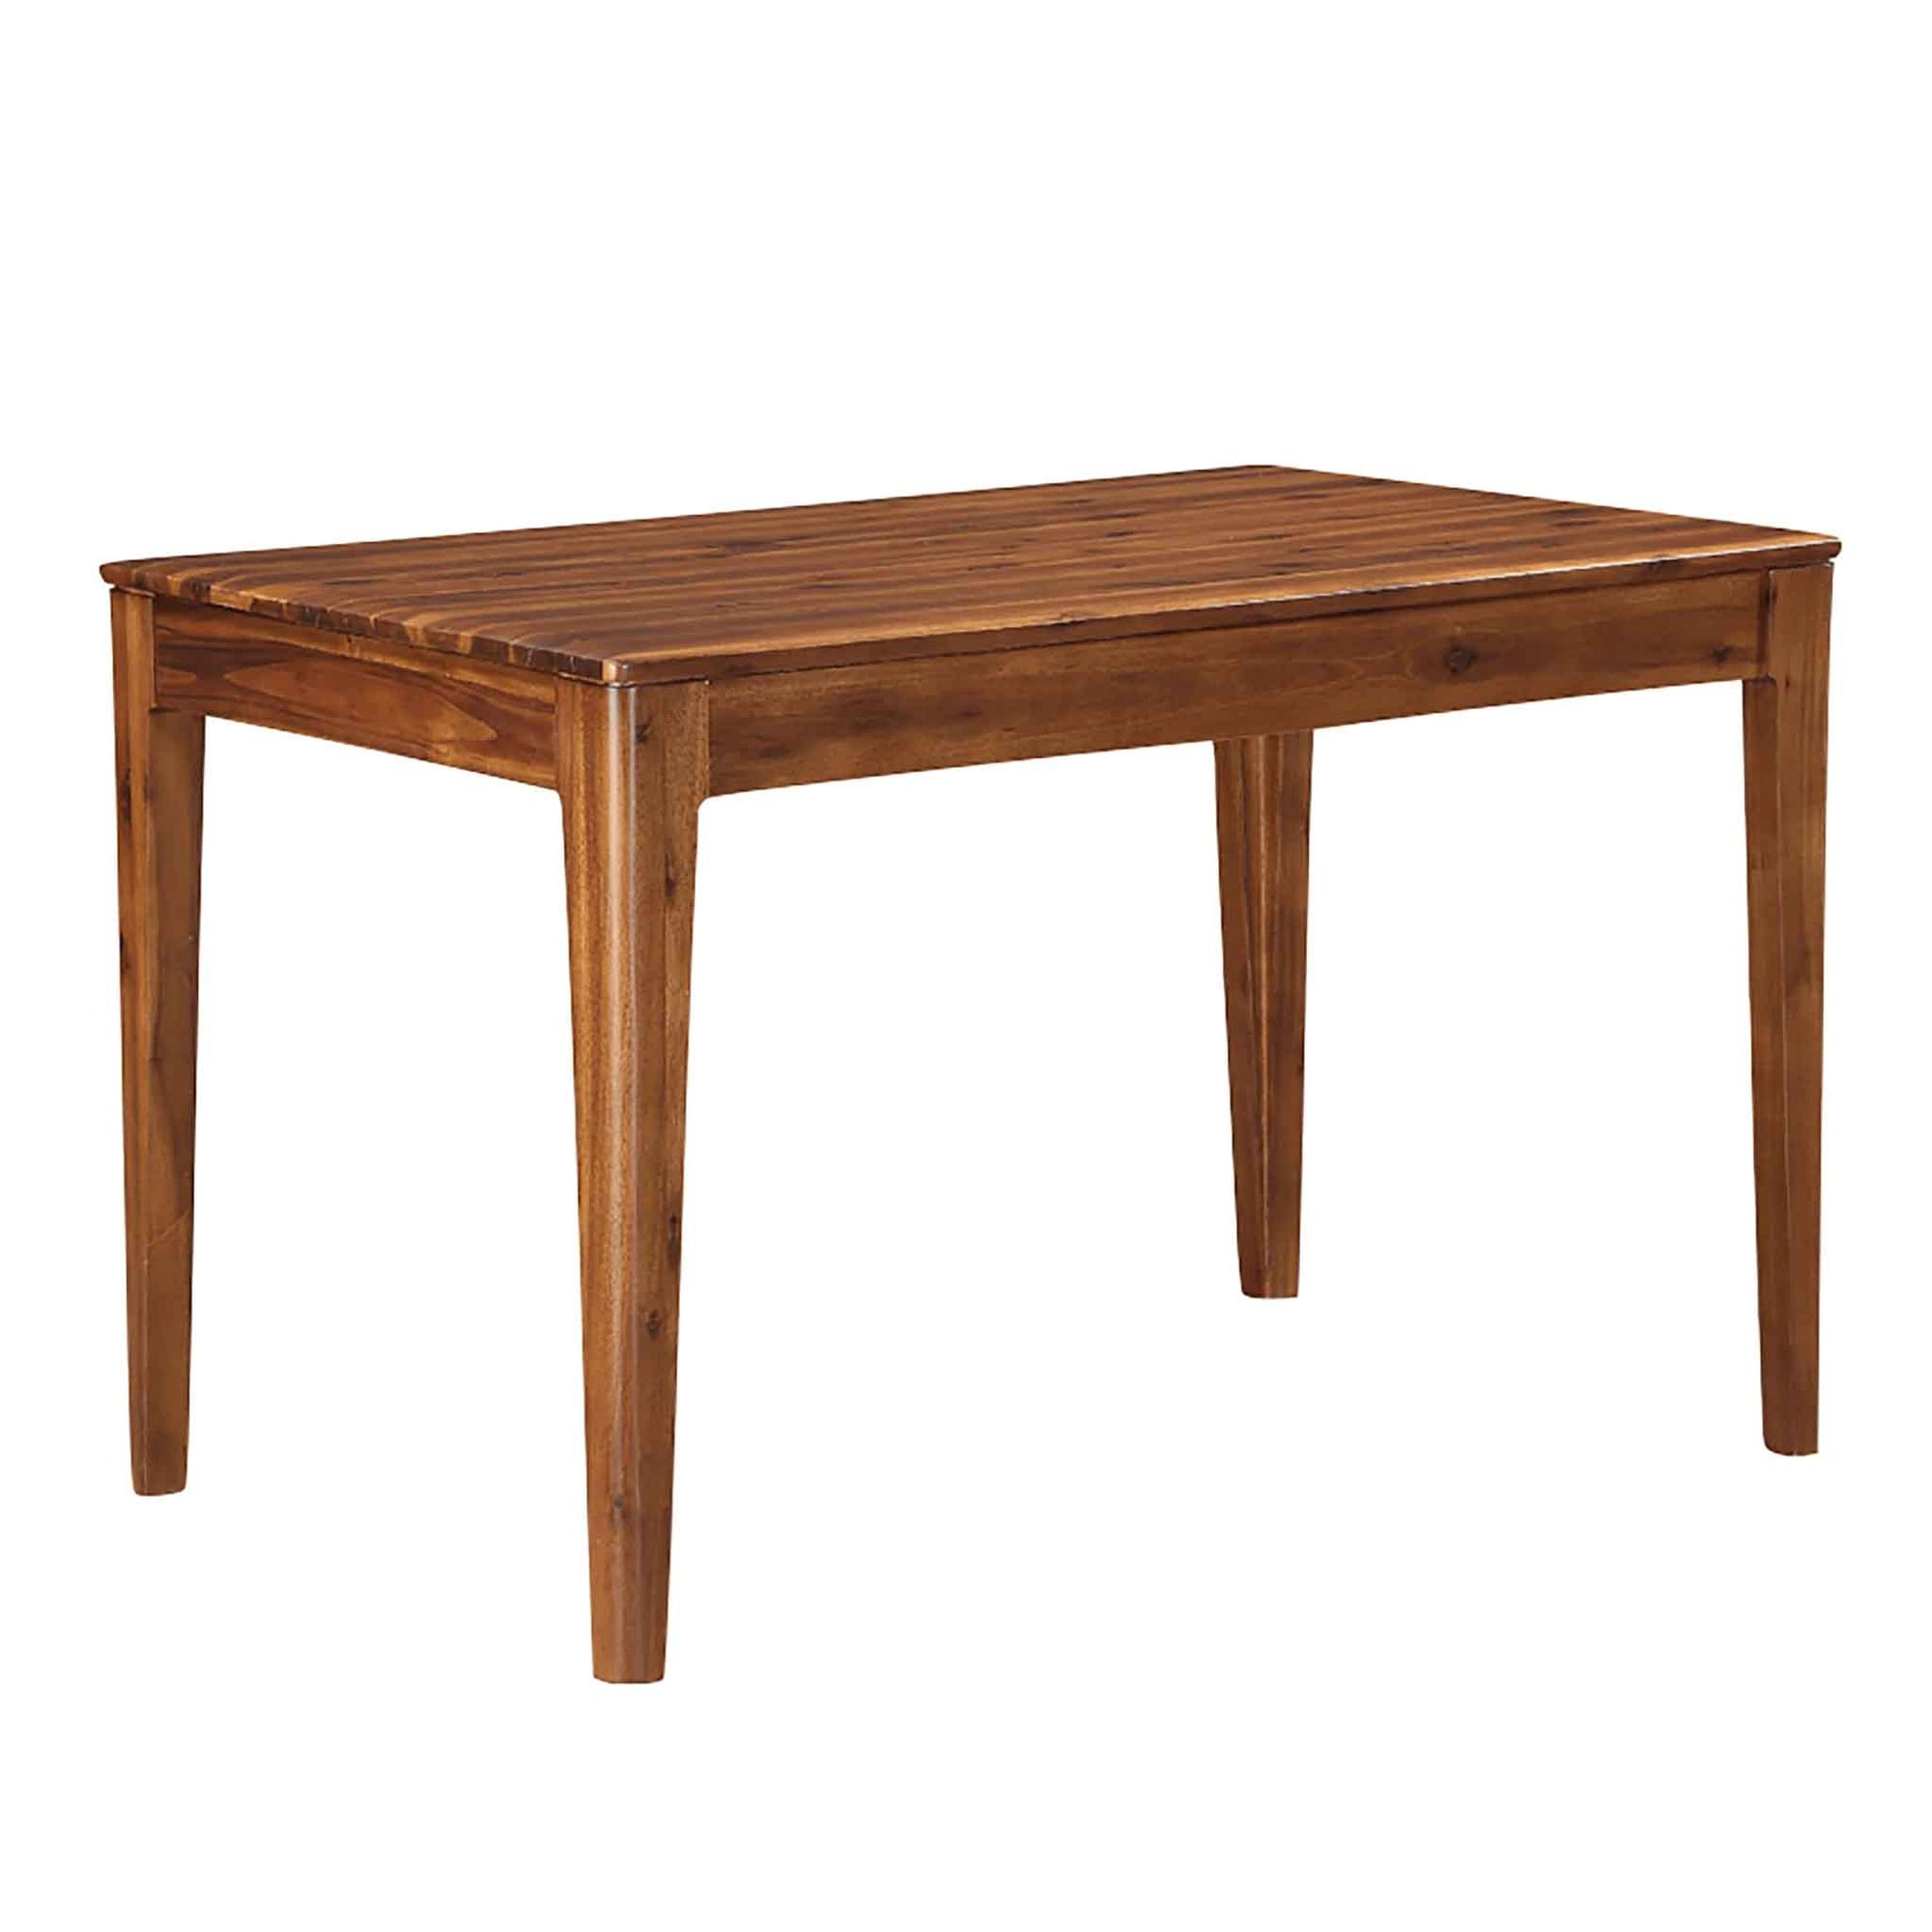 The Dunmore Acacia Dark Wood Dining Table from Roseland Furniture